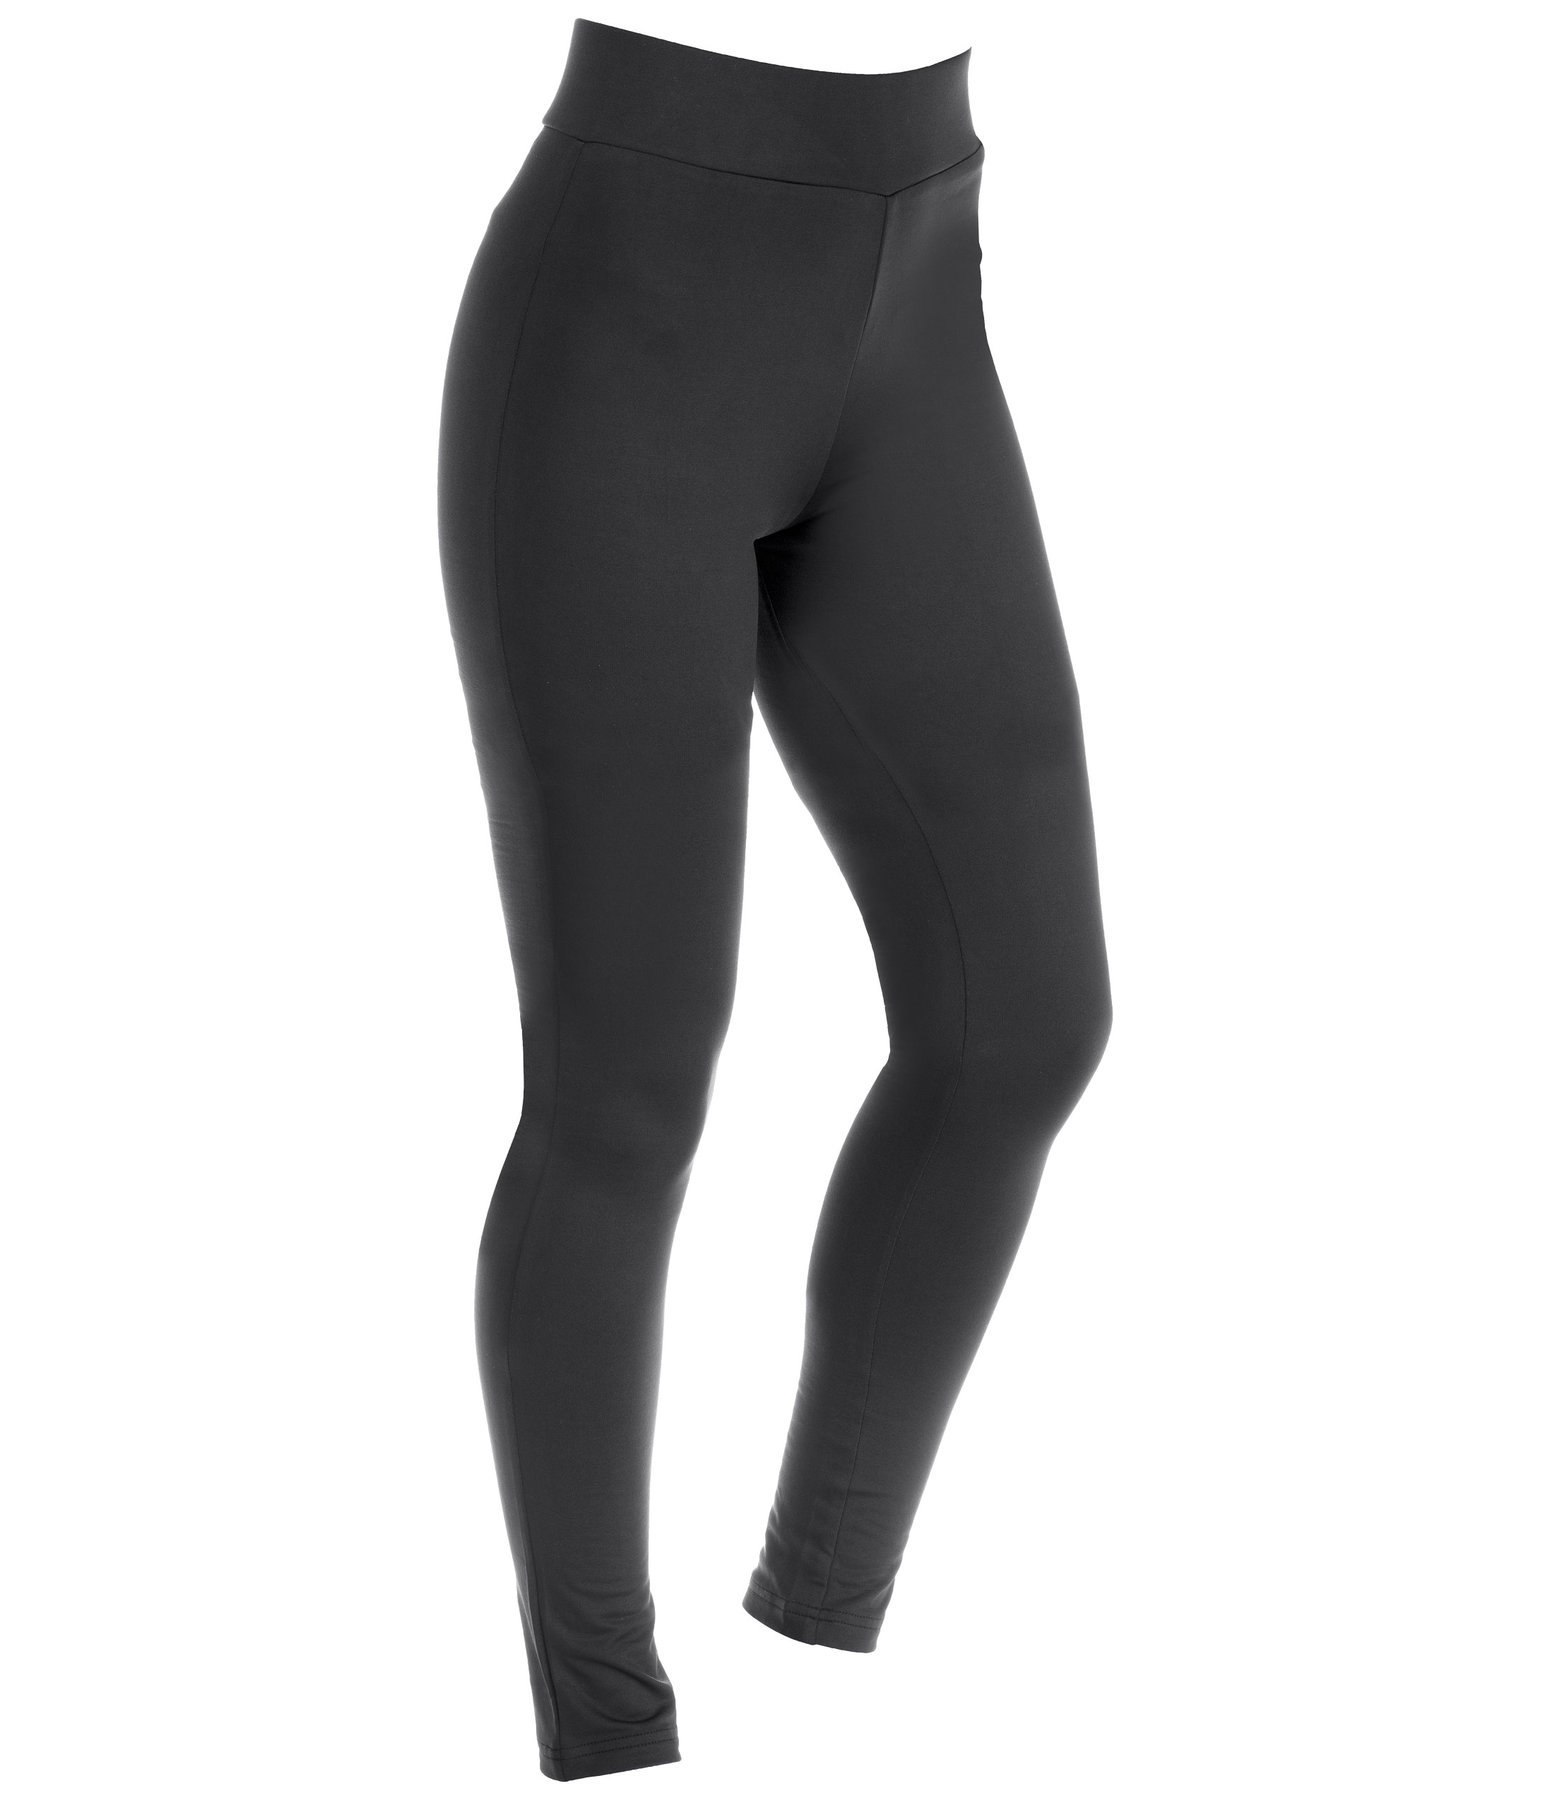 thermo-voltige legging Basic